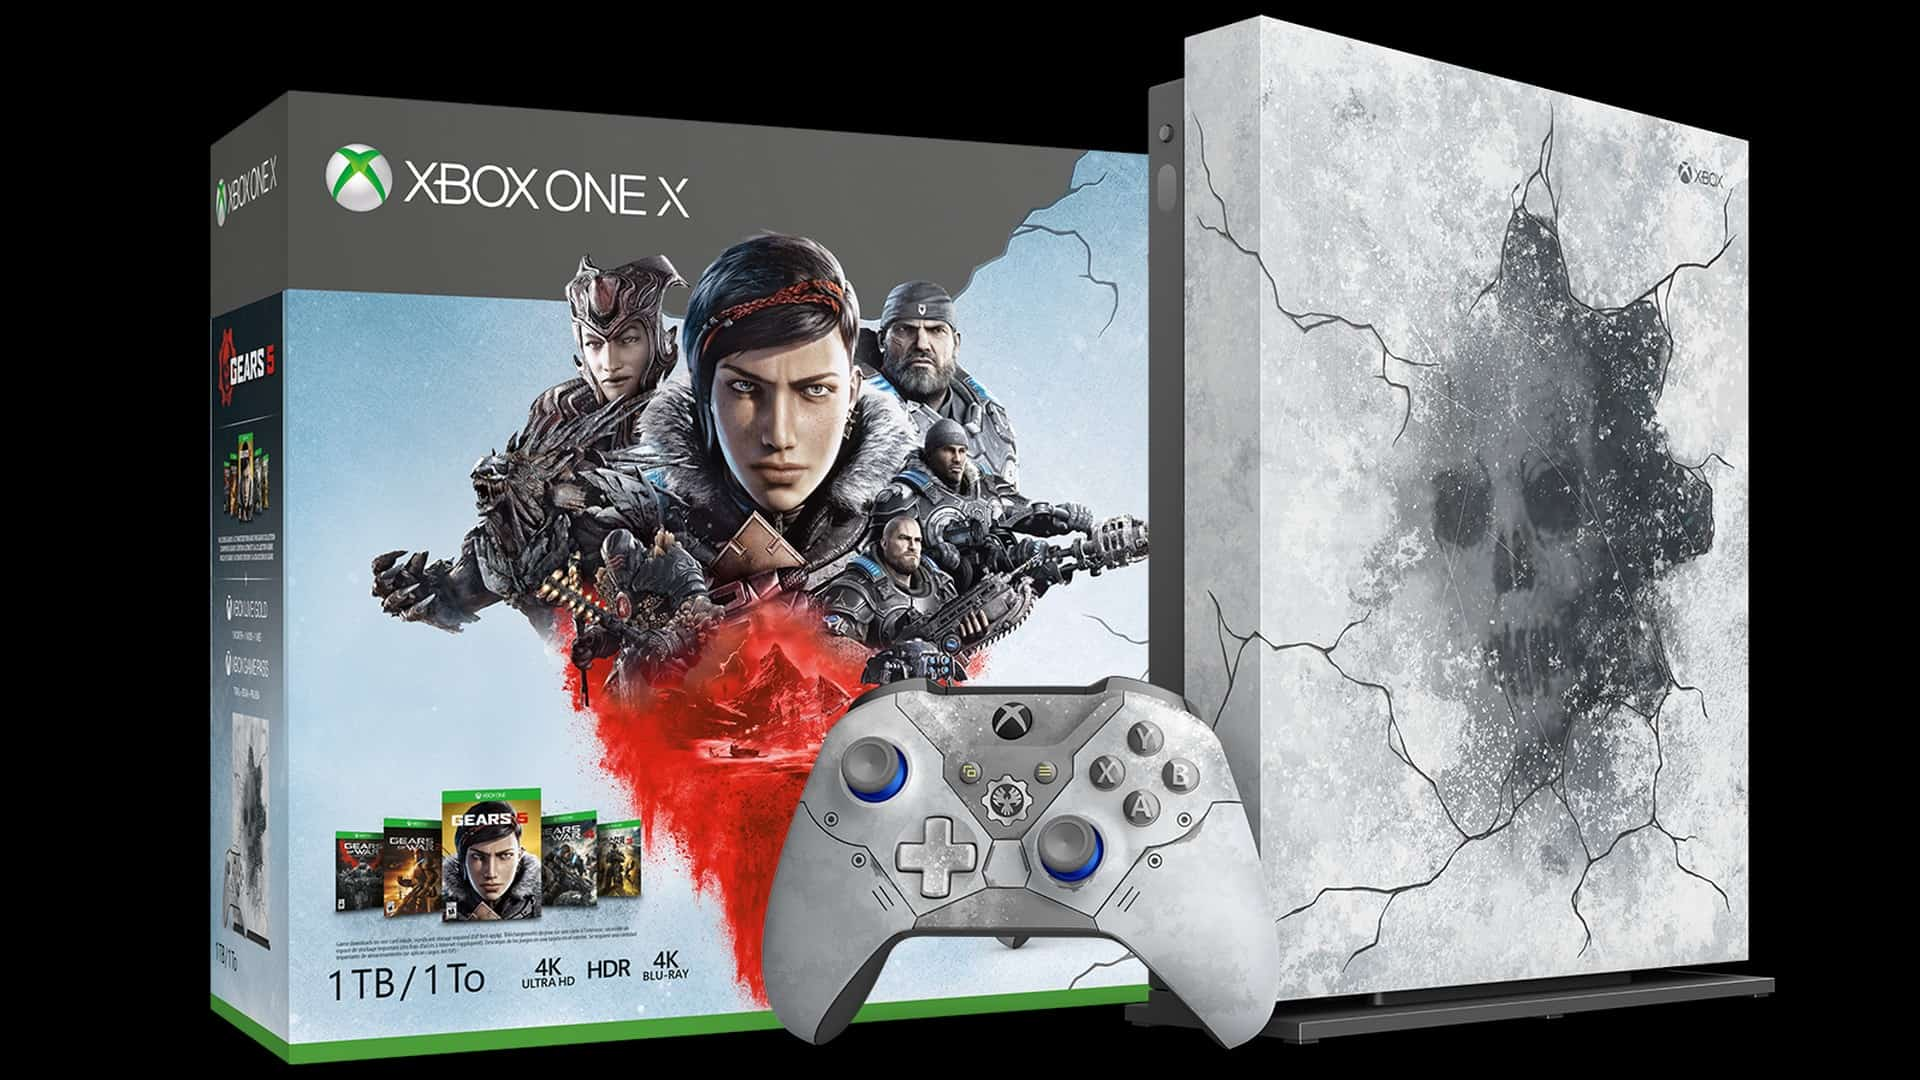 Gears 5 Limited Edition Xbox One X Console & Accessories Available for Preorder Now